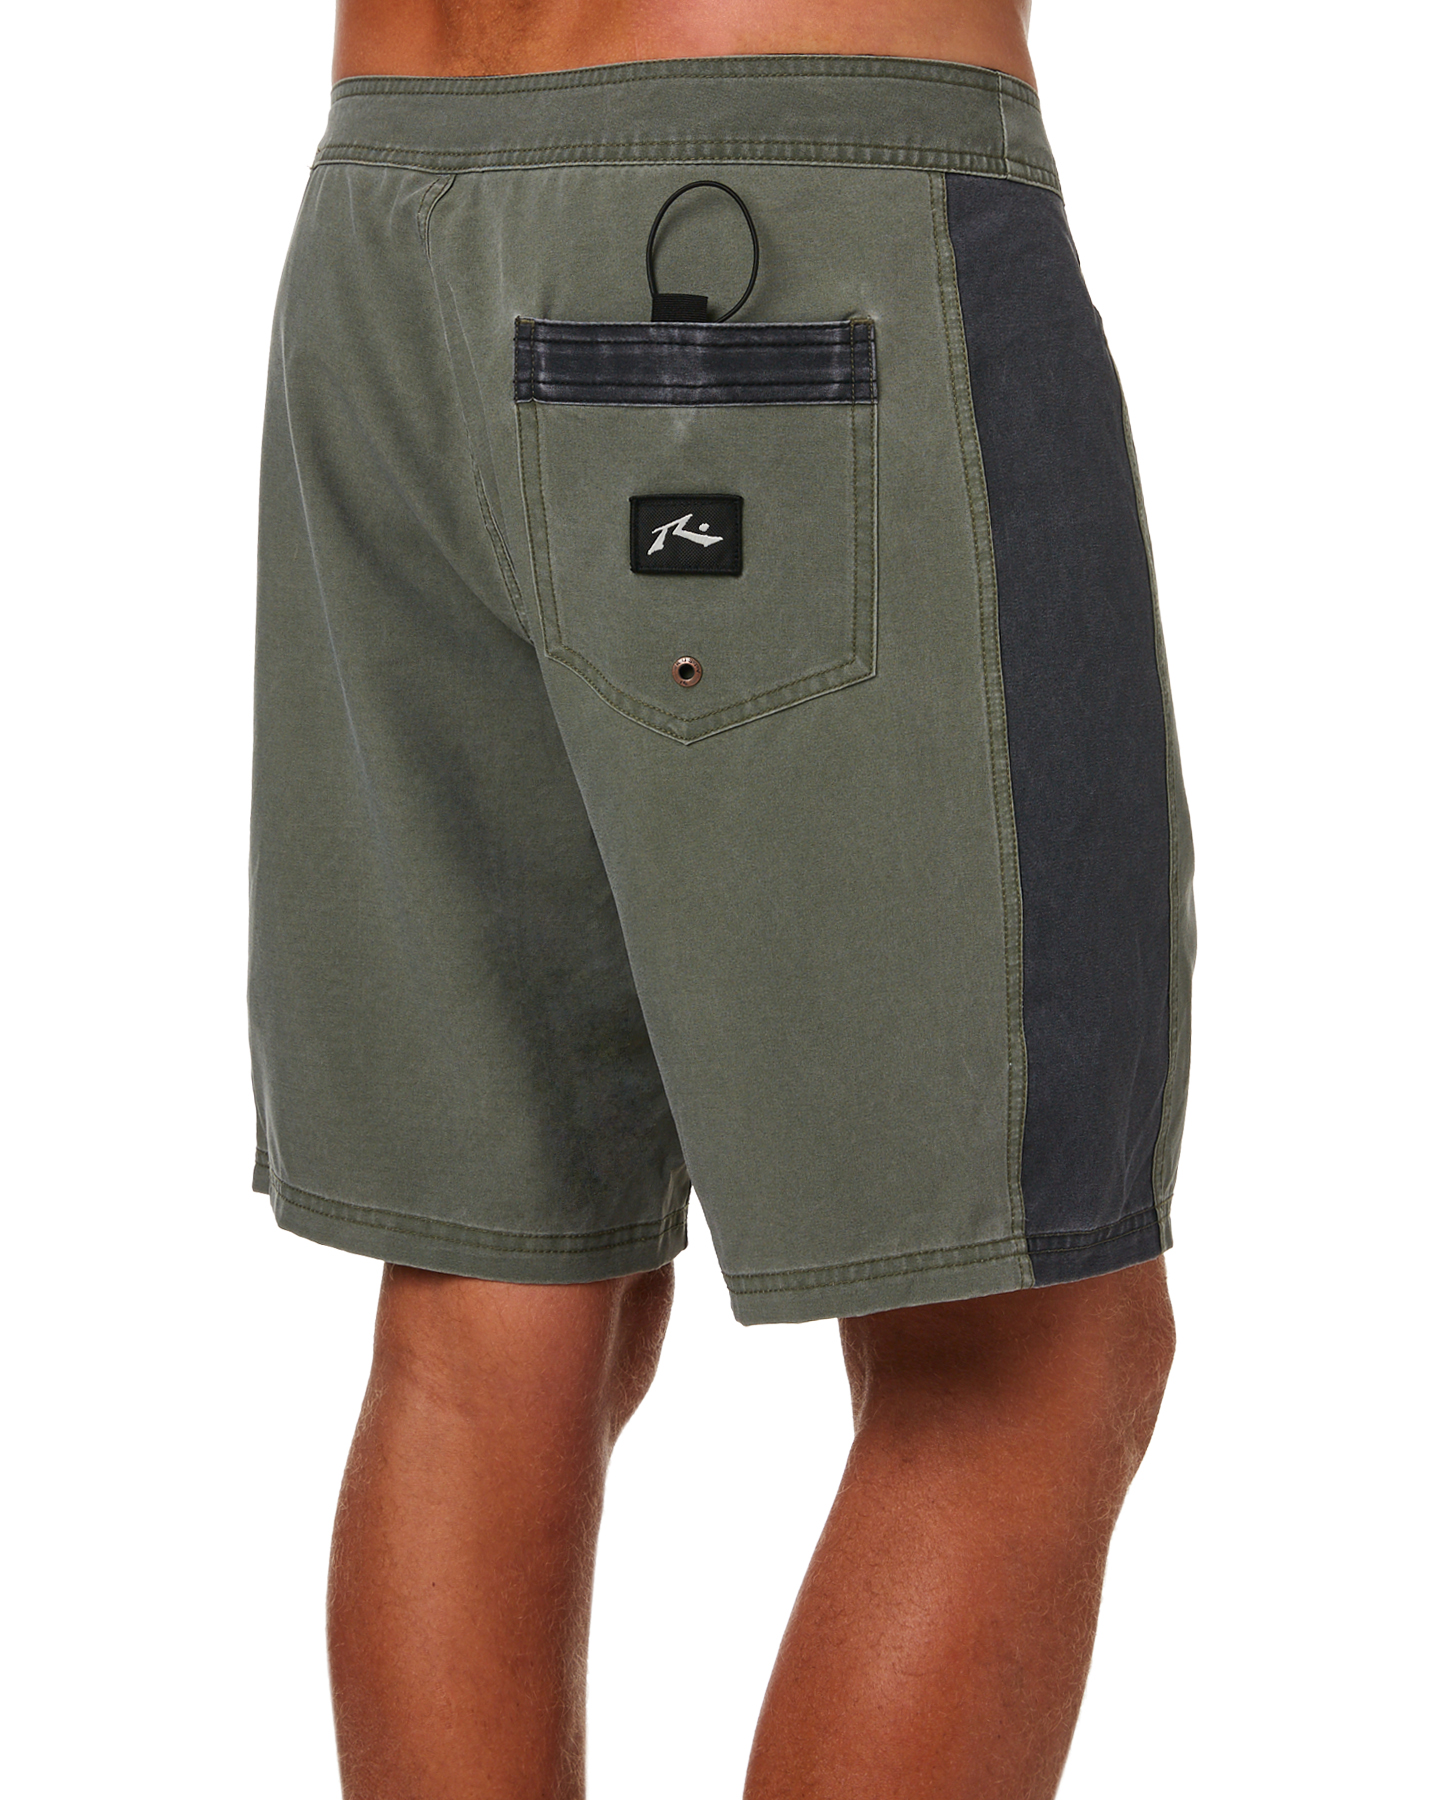 9845b7e0d3 New Rusty Men's Jiggy Jigs Mens Boardshort Fitted Spandex Grey | eBay